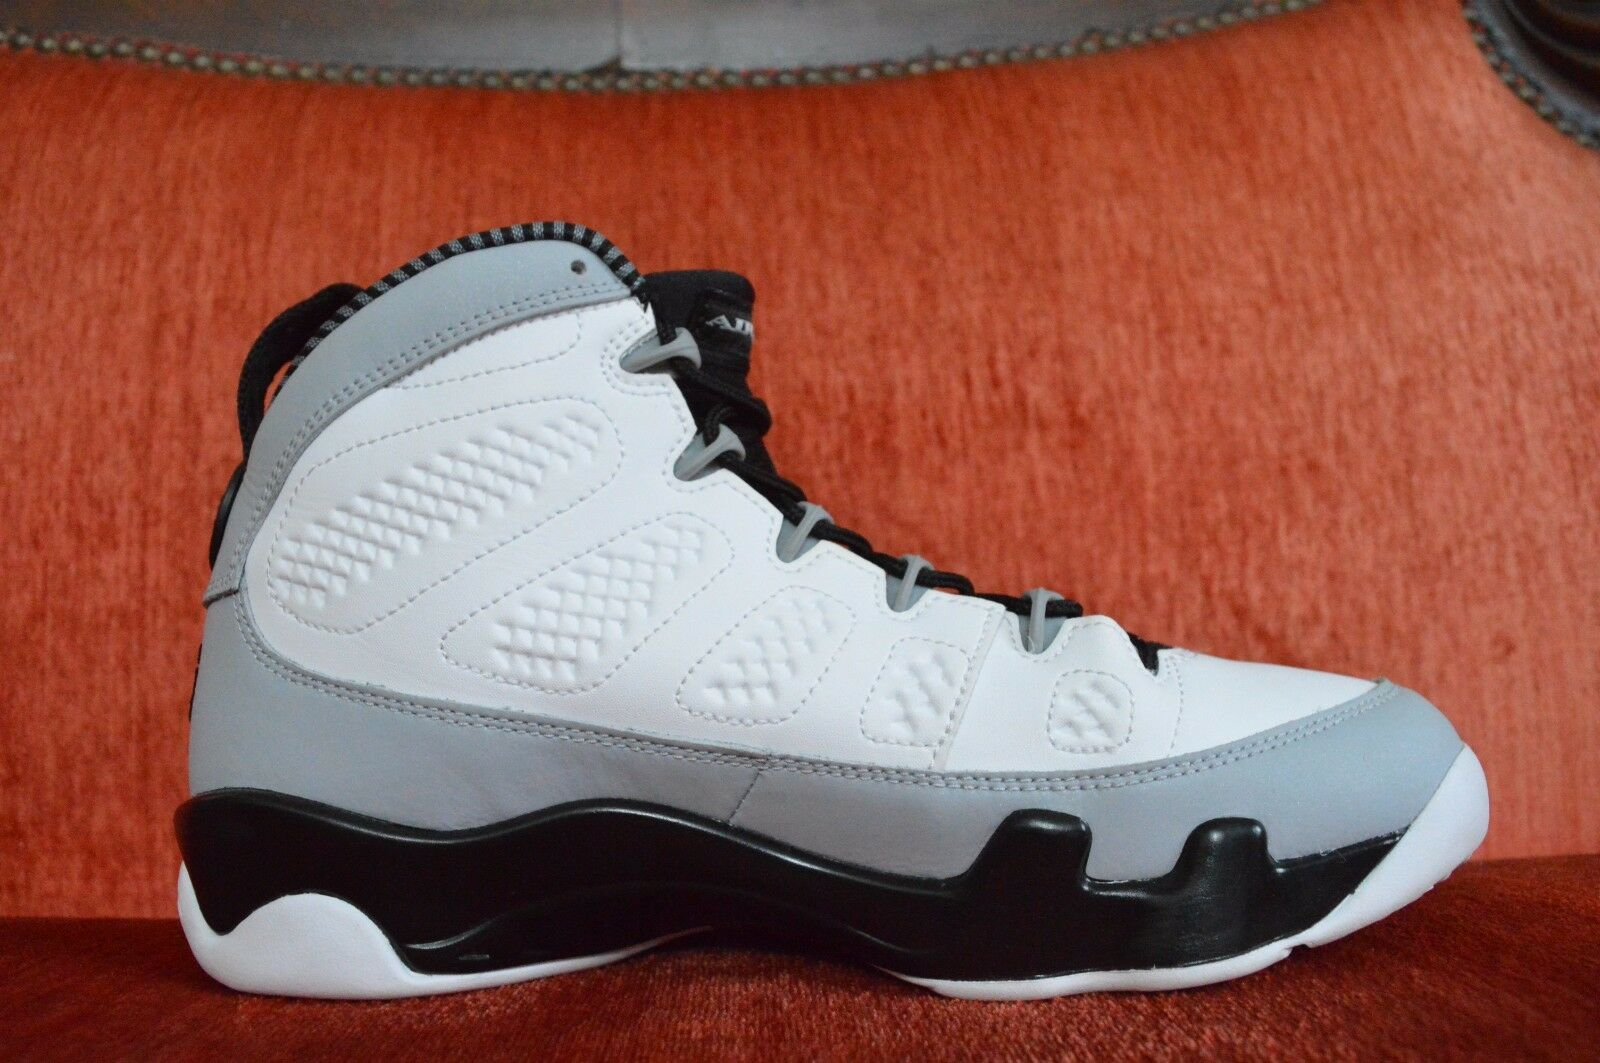 WORN TWICE Nike Air Jordan 9 IX retro Barons Comfortable Seasonal price cuts, discount benefits